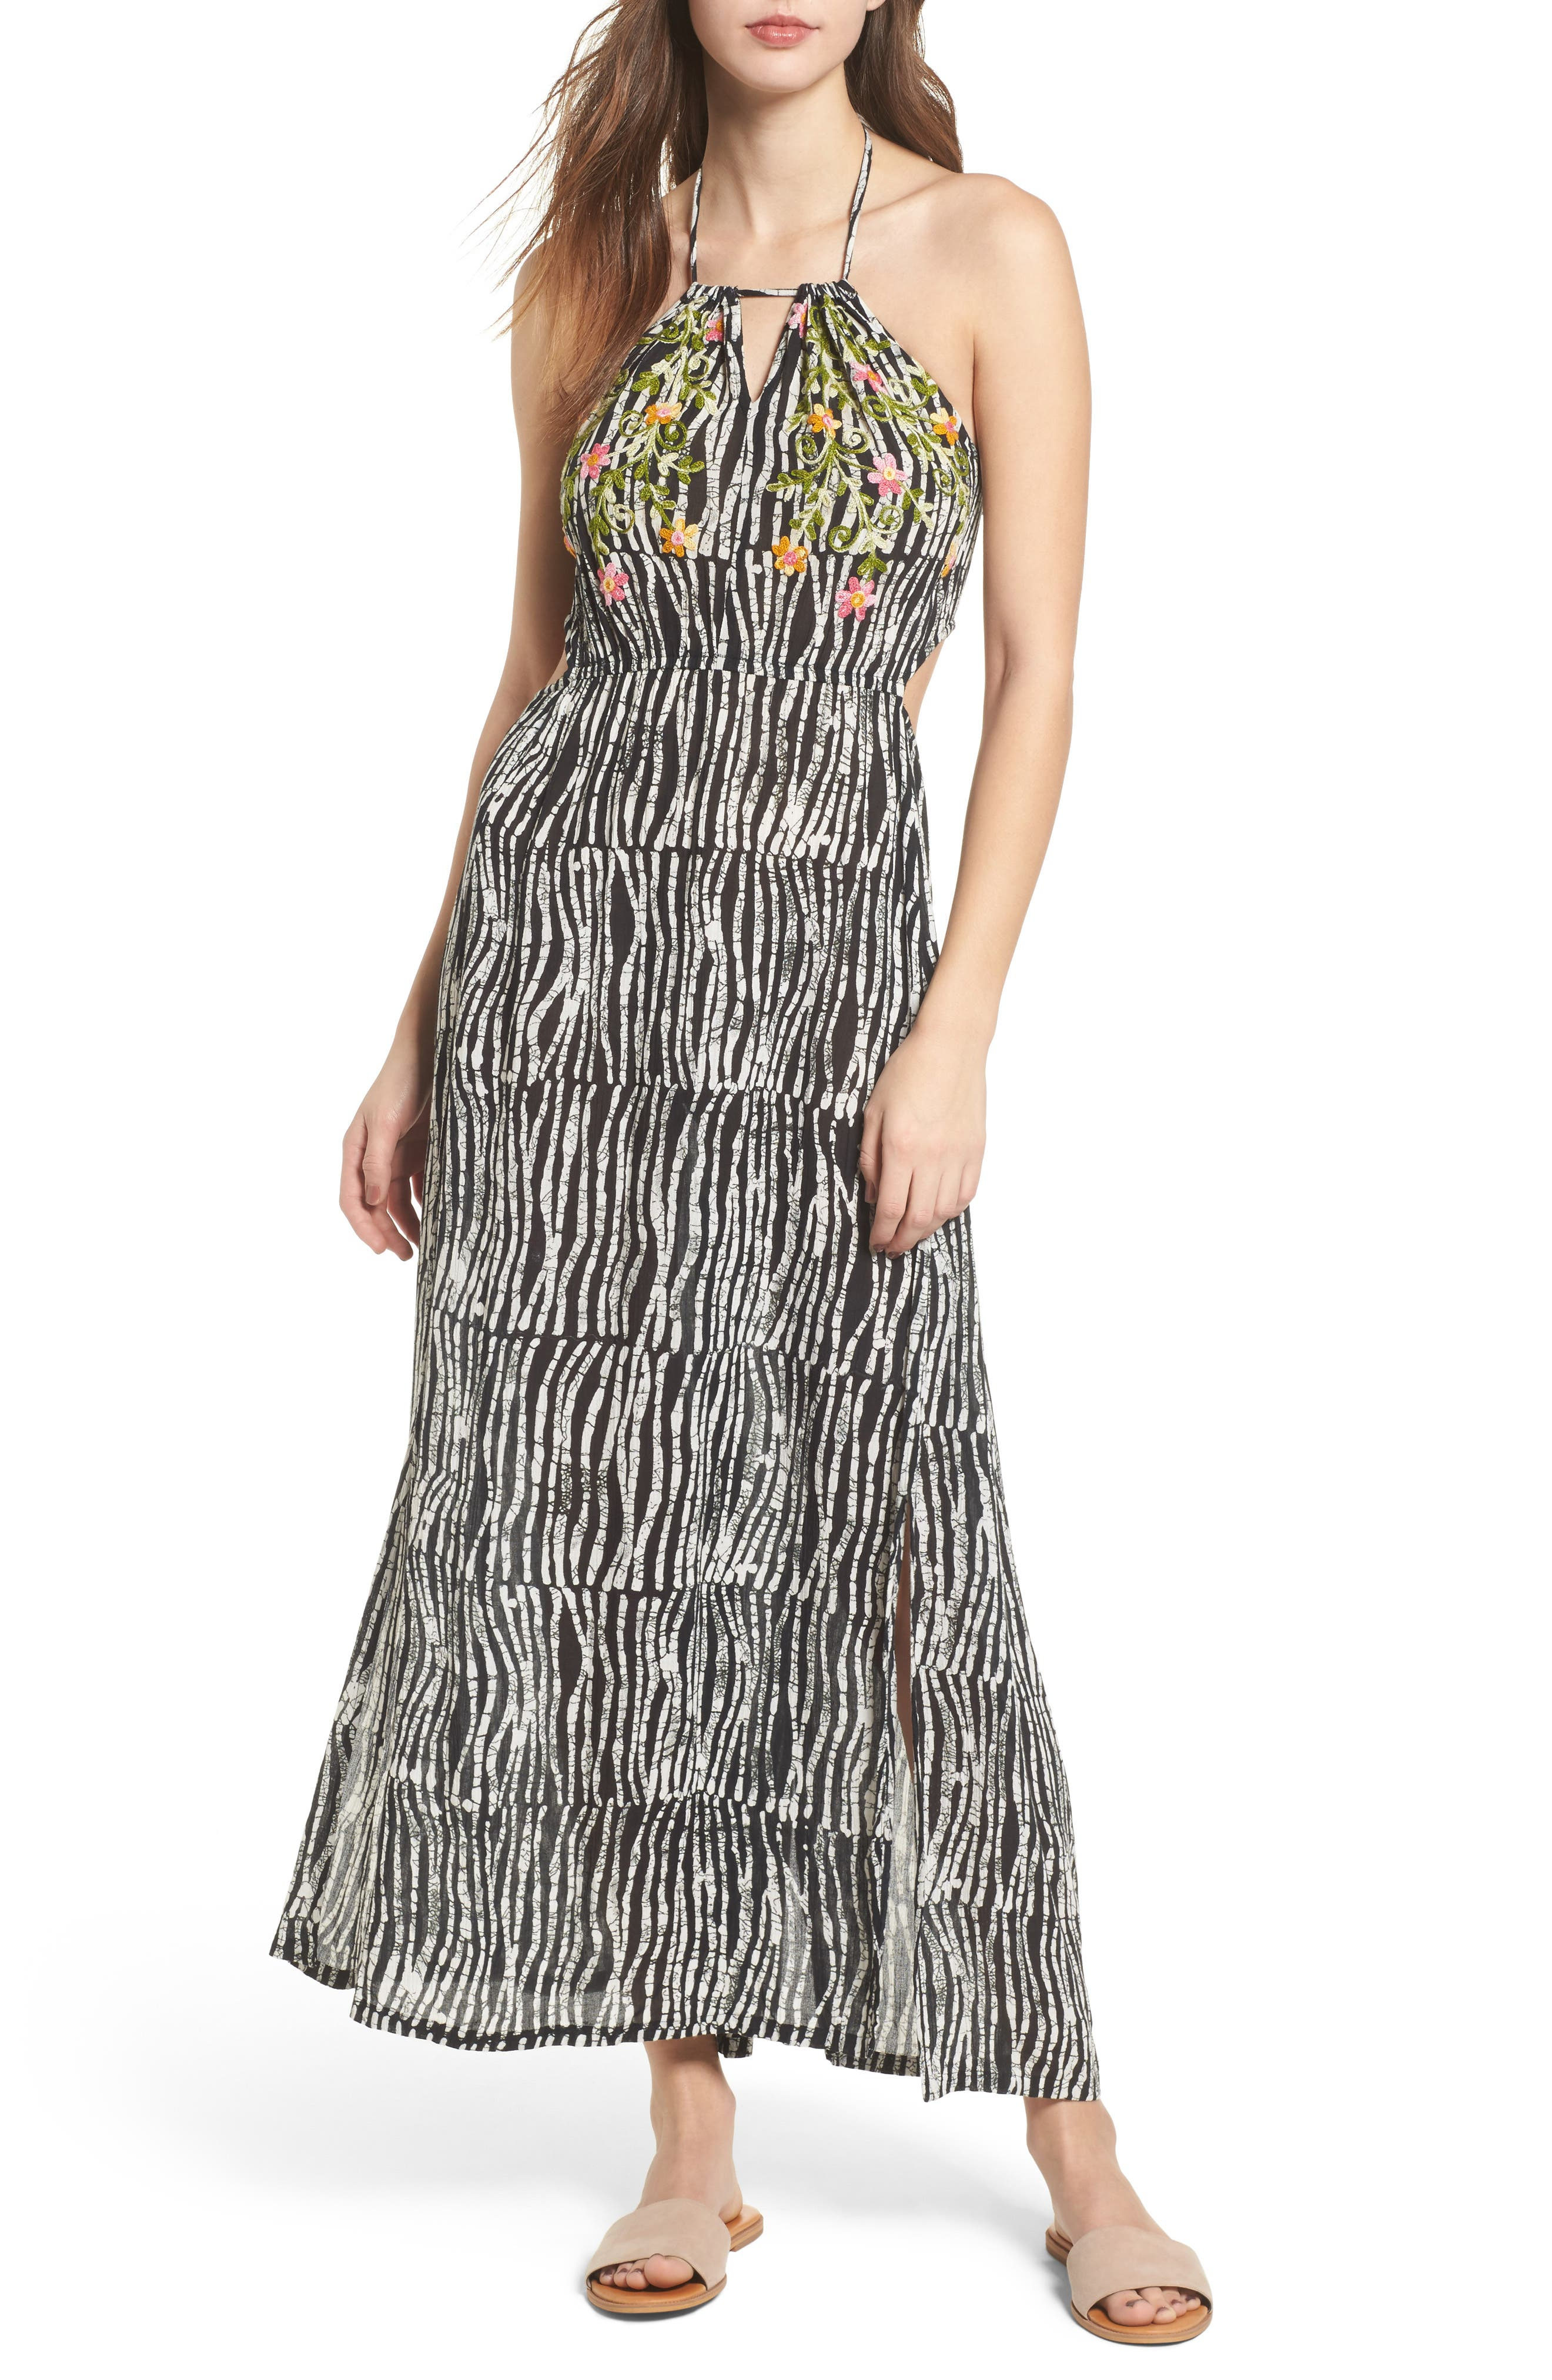 Before Dawn Embroidered Maxi Dress,                             Main thumbnail 1, color,                             Black/ White